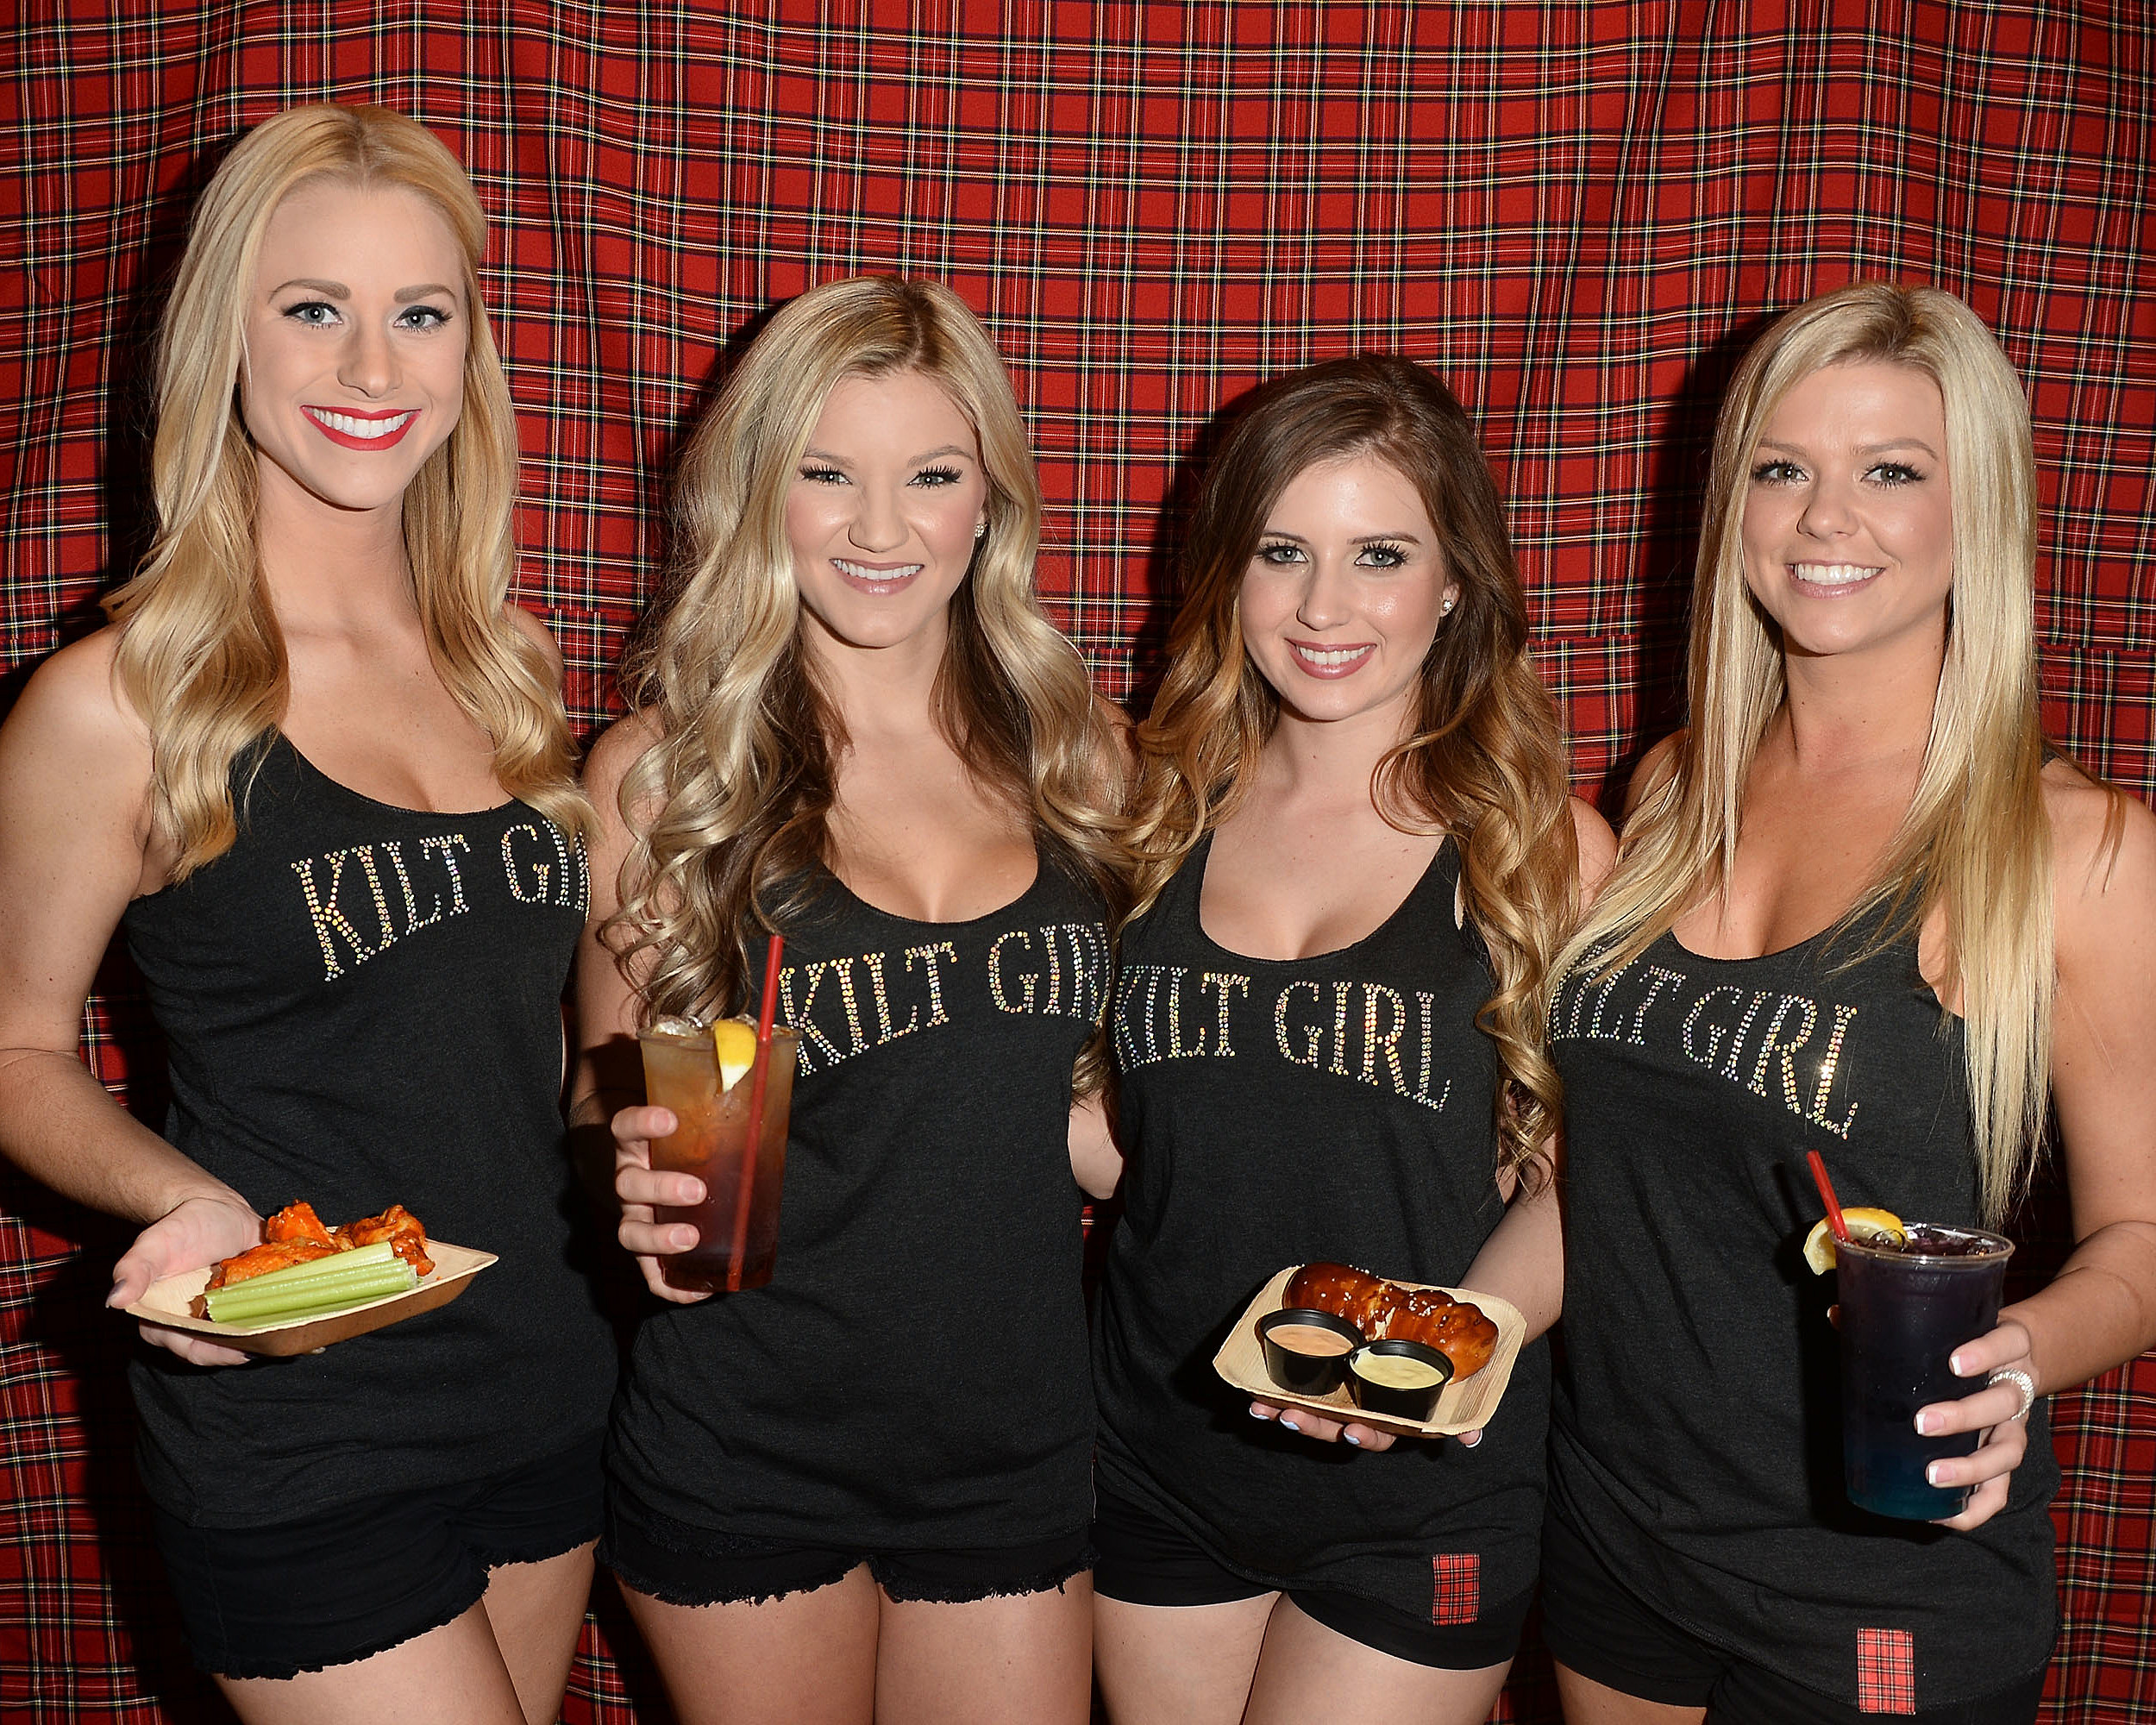 Tilted Kilt Girls In Black